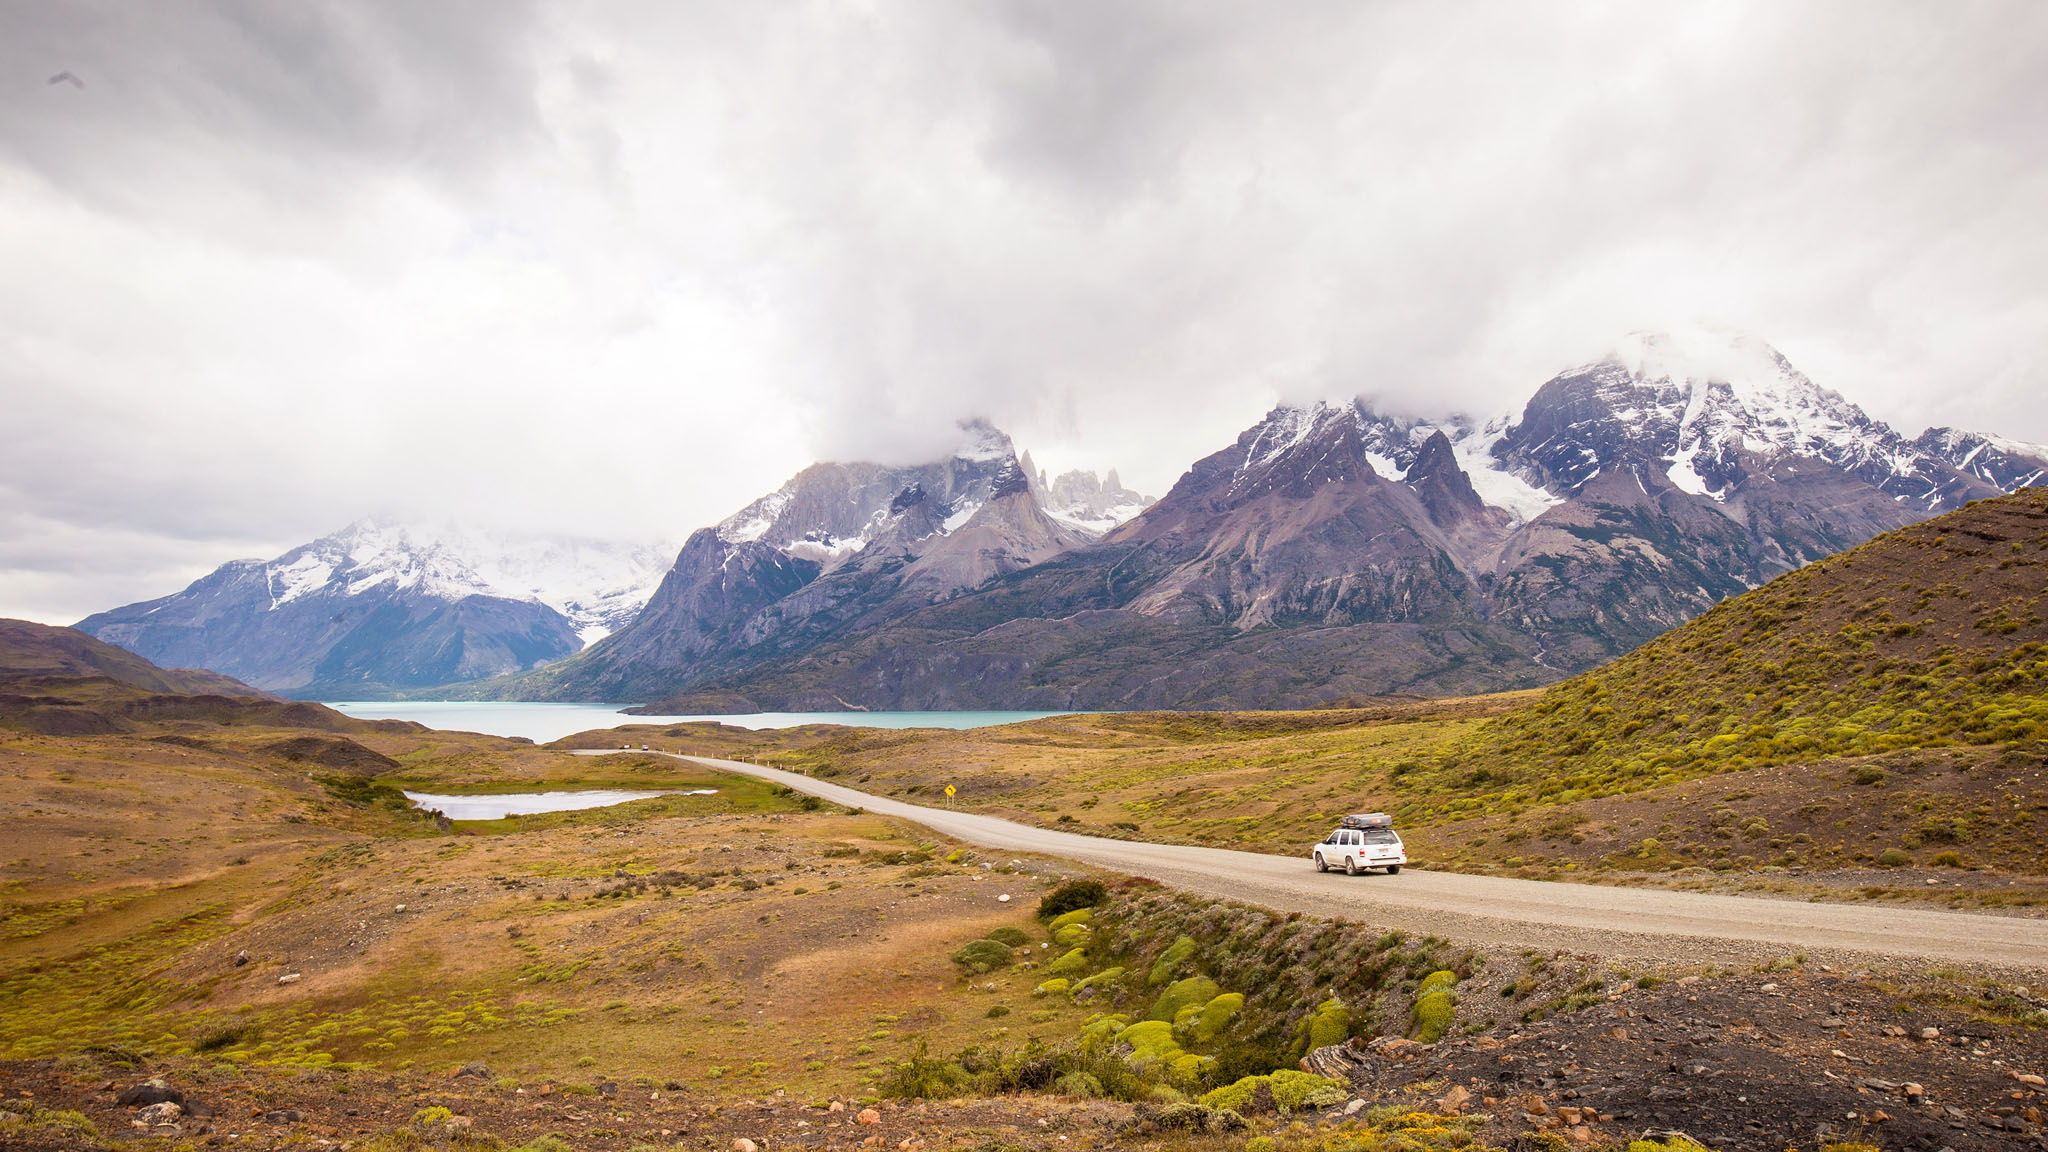 Wedding-Travellers-Overlanding-Destination-Wedding-Chile-Torres-del-Paine-road-car-lake-mountains-snow